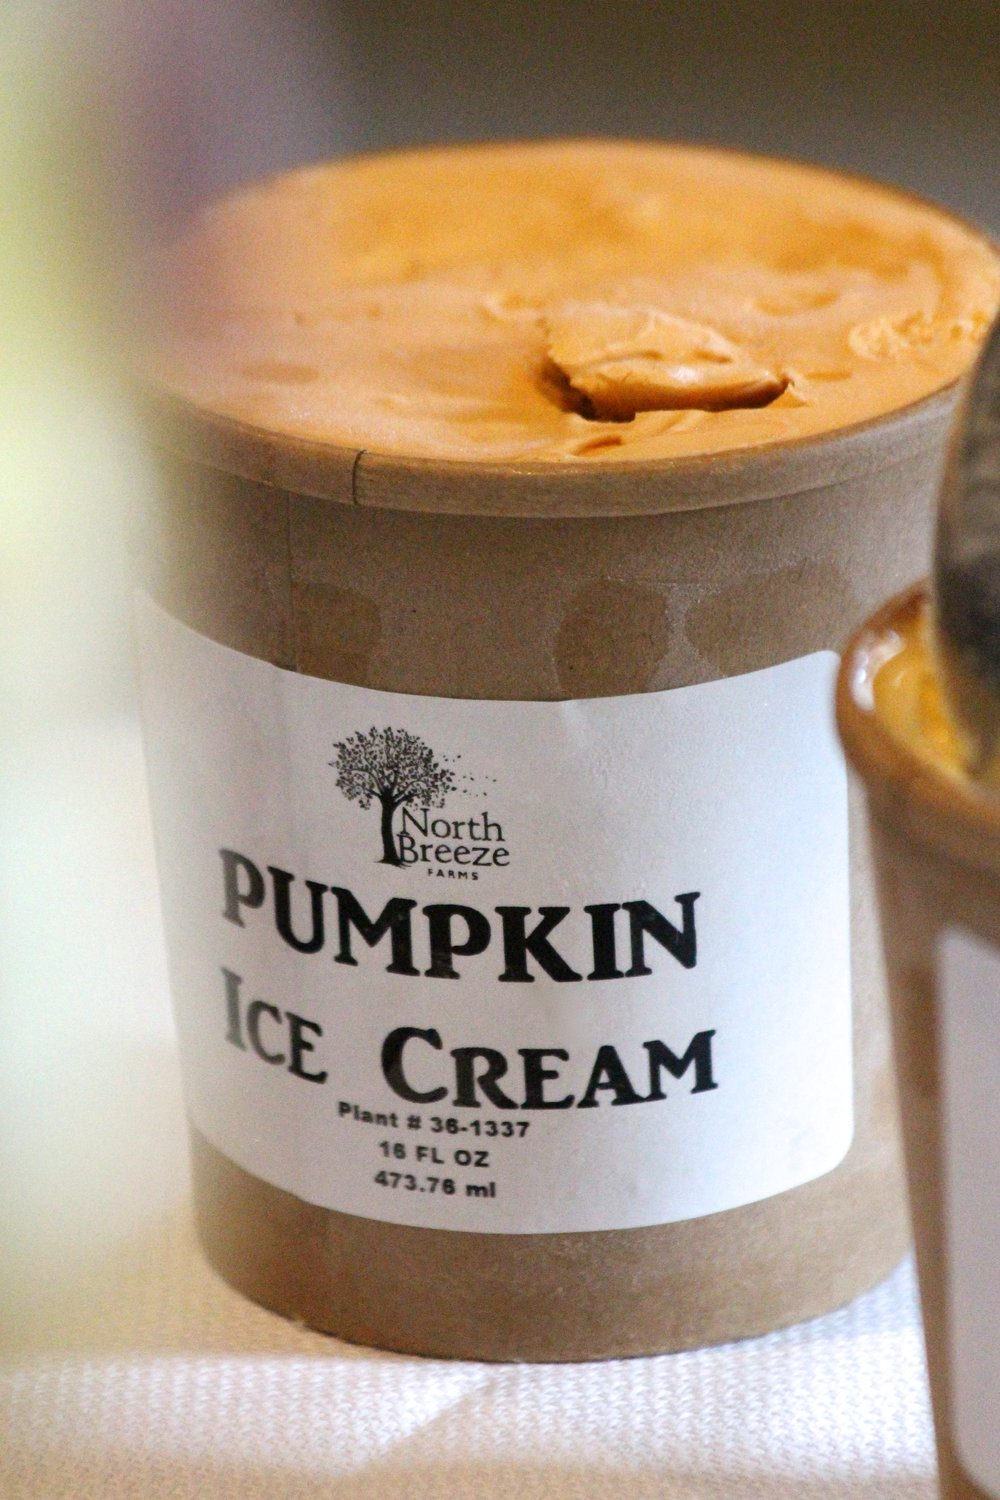 Pumpkin Ice Cream $5.99